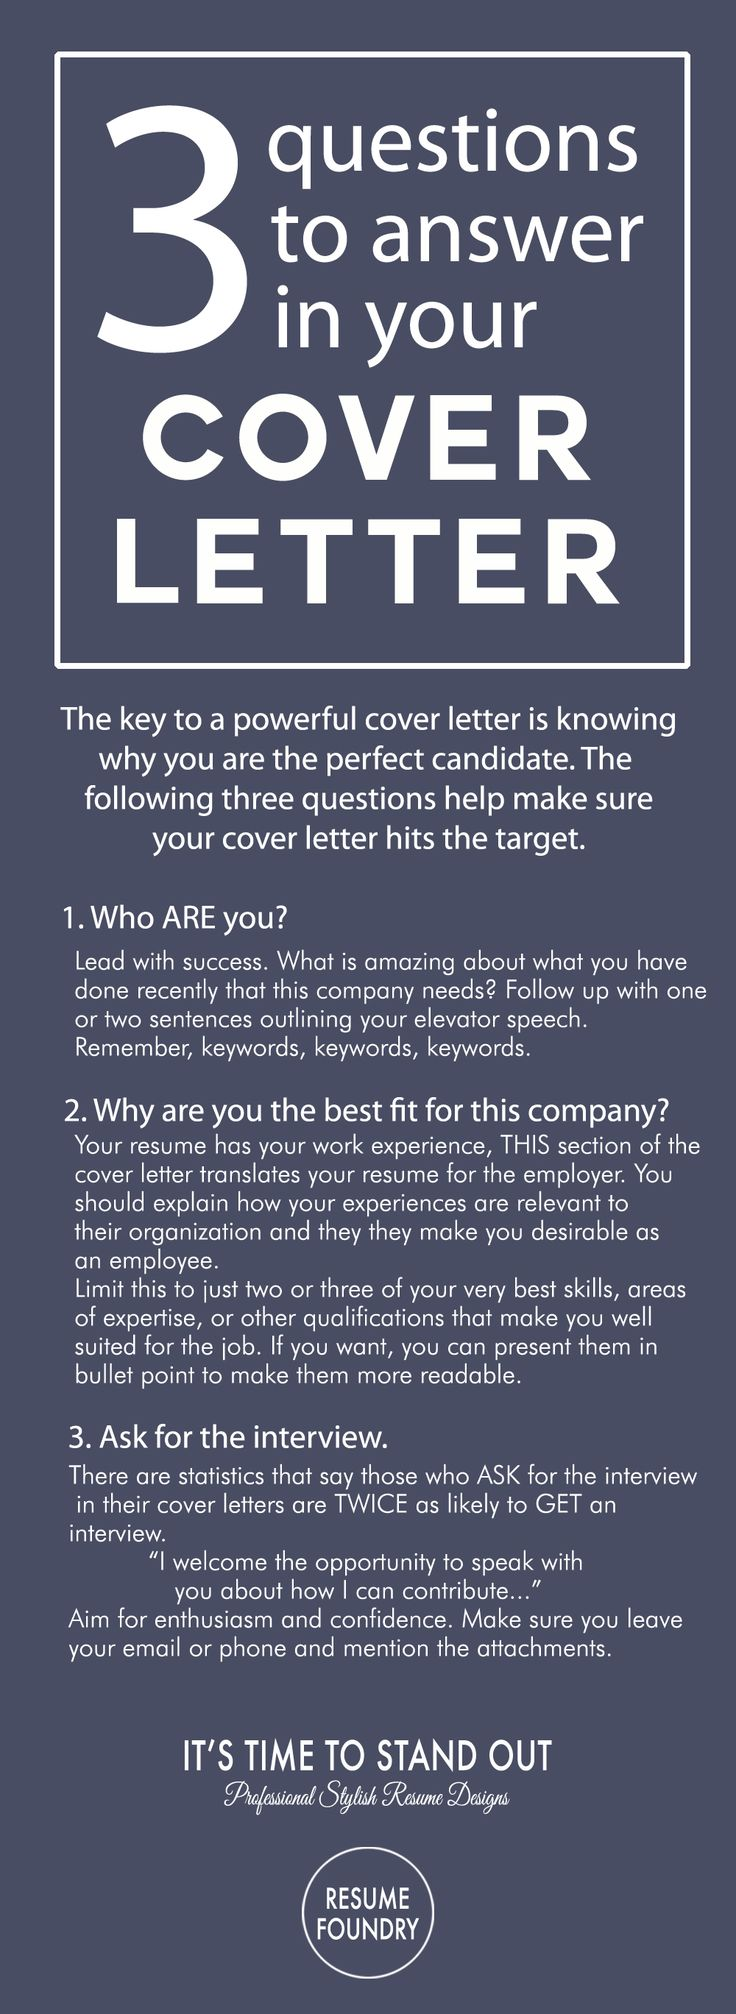 cover letter tips outline how to write a cover letter resume ideasgood - How To Make Cover Letter Resume